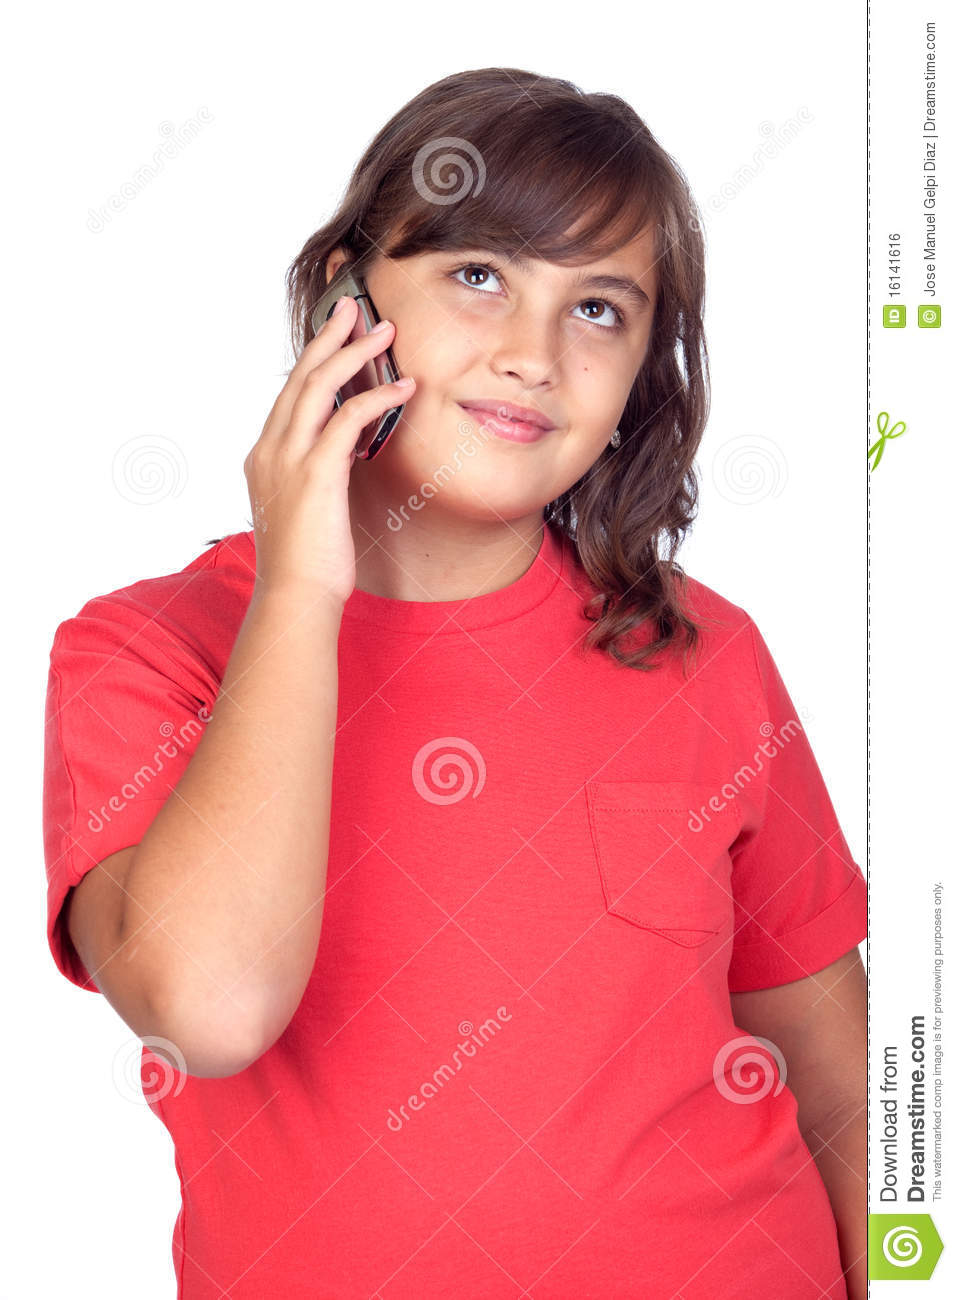 More similar stock images of ` Adorable preteen girl with a mobile `